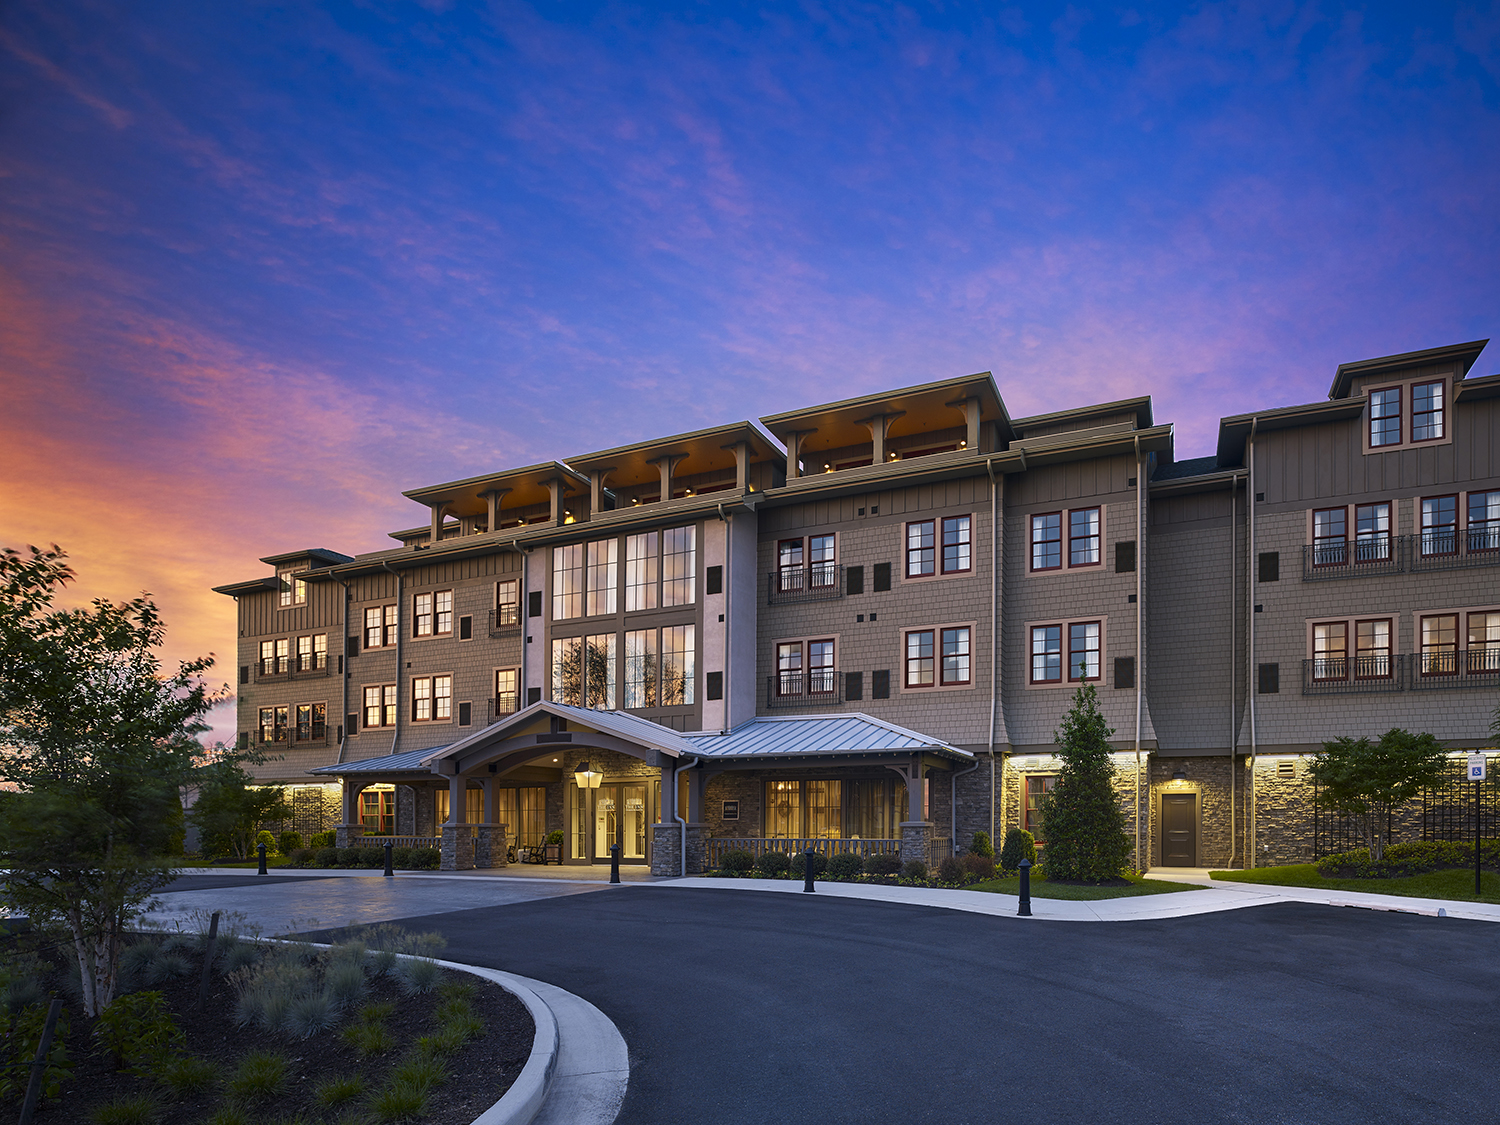 The Inn is the newest property of the Chesapeake Bay Beach Club and opened in 2015.